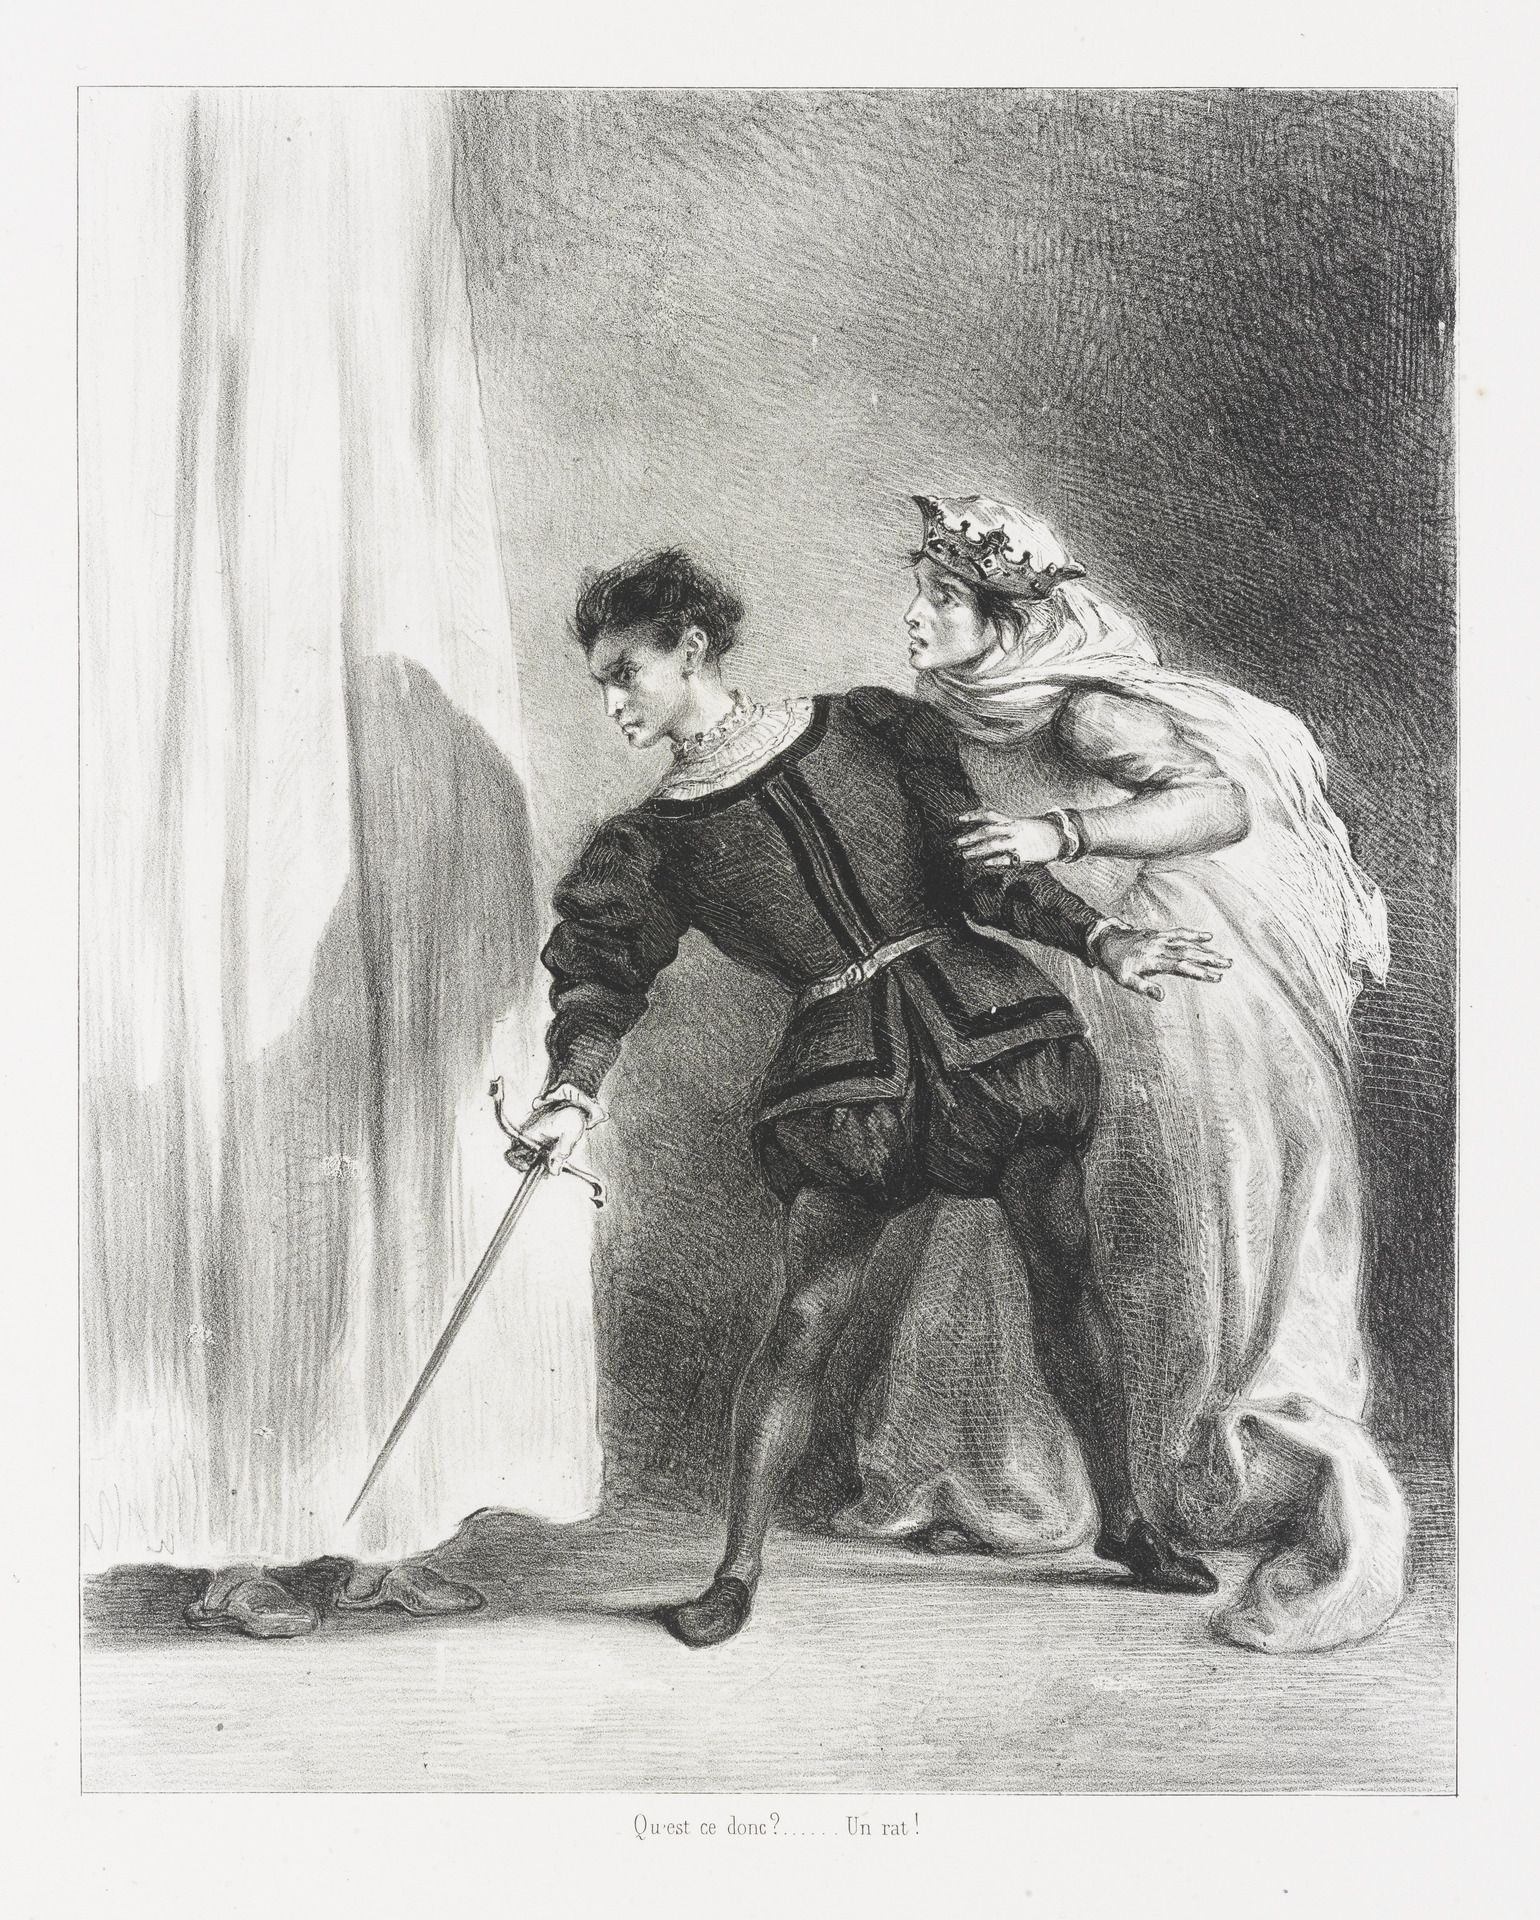 Eugène Delacroix, French, 1798–1863 Le meurtre de Polonius (Act. III. Sc. IV) (The Murder of Polonius), from Shakespeare's Hamlet  1834–43 Lithograph image: 23.9 x 19.2 cm (9 7/16 x 7 9/16 in.); sheet: 54.2 x 35.5 cm (21 5/16 x 14 in.); stone: 23.9 x 19.2 cm (9 7/16 x 7 9/16 in.) The Arthur Ross Collection 2012.159.56.8